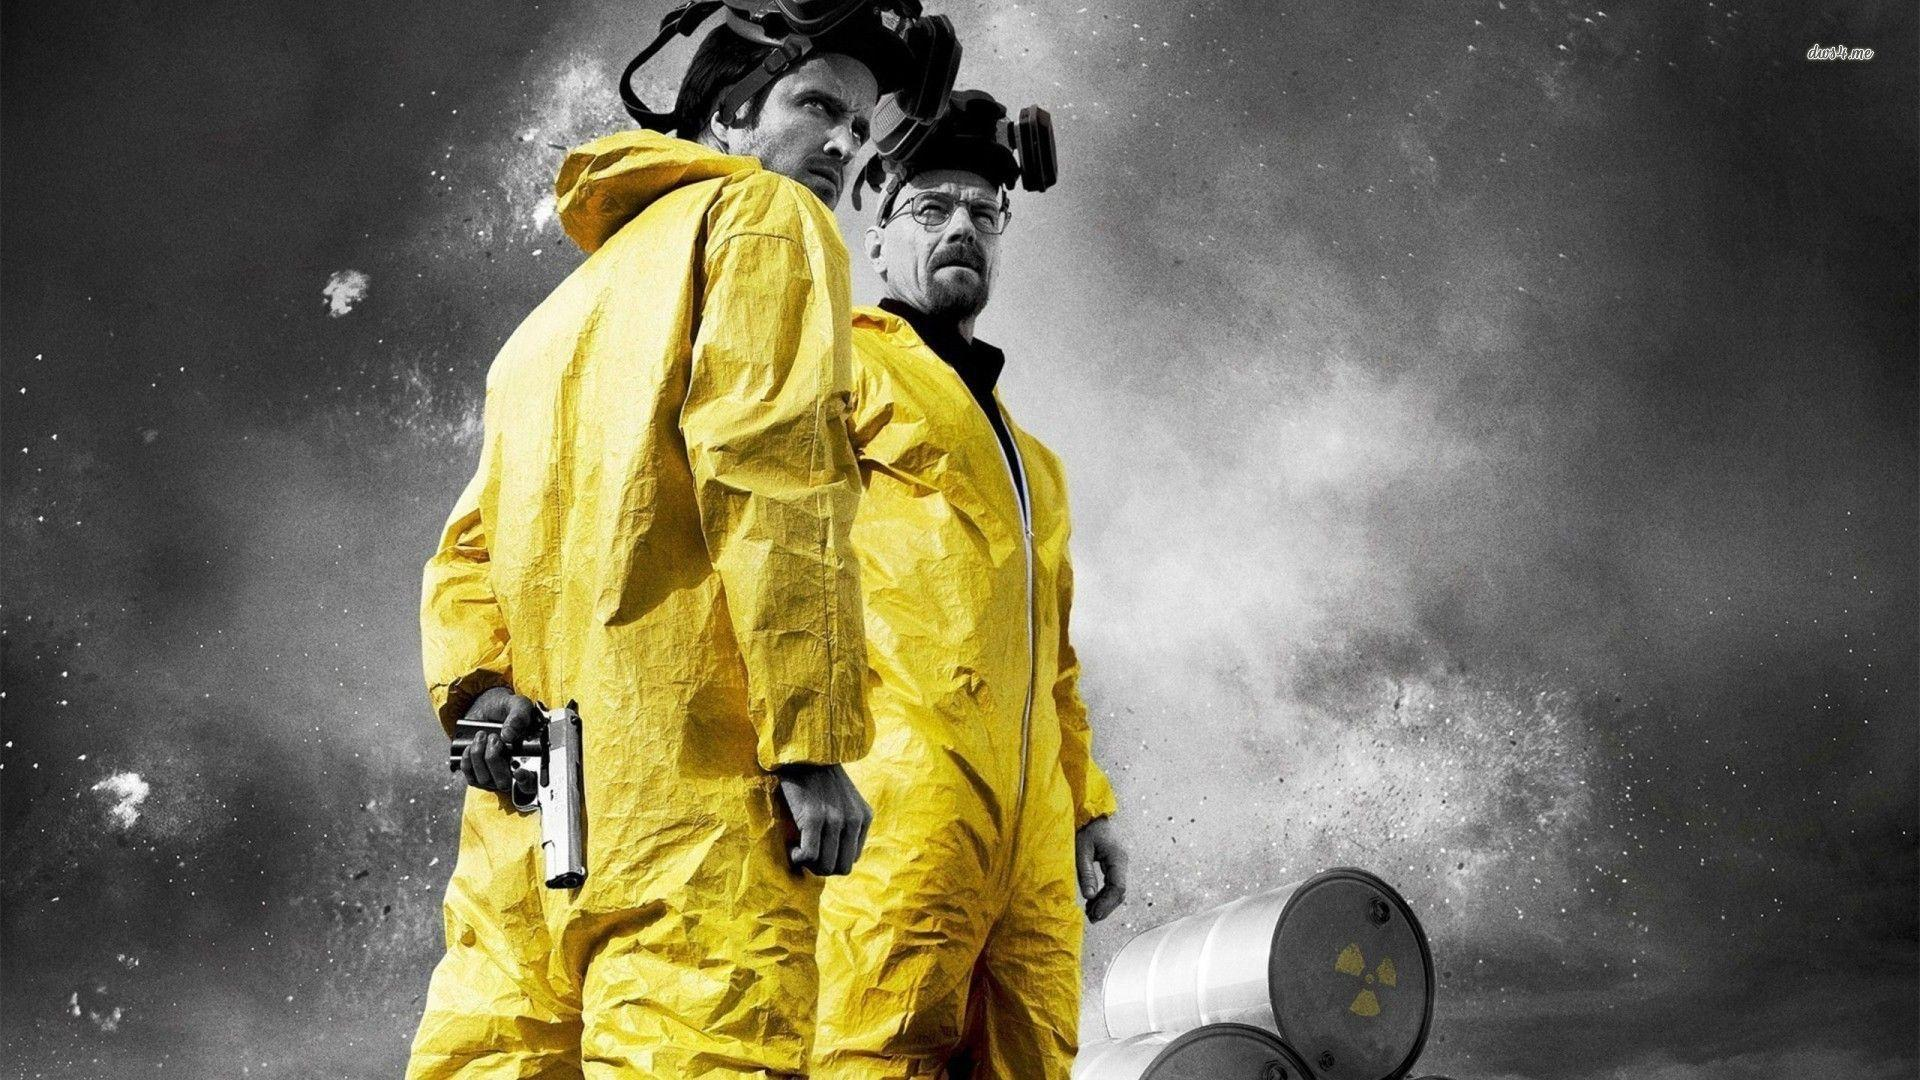 breaking bad 50 wallpapers - photo #23